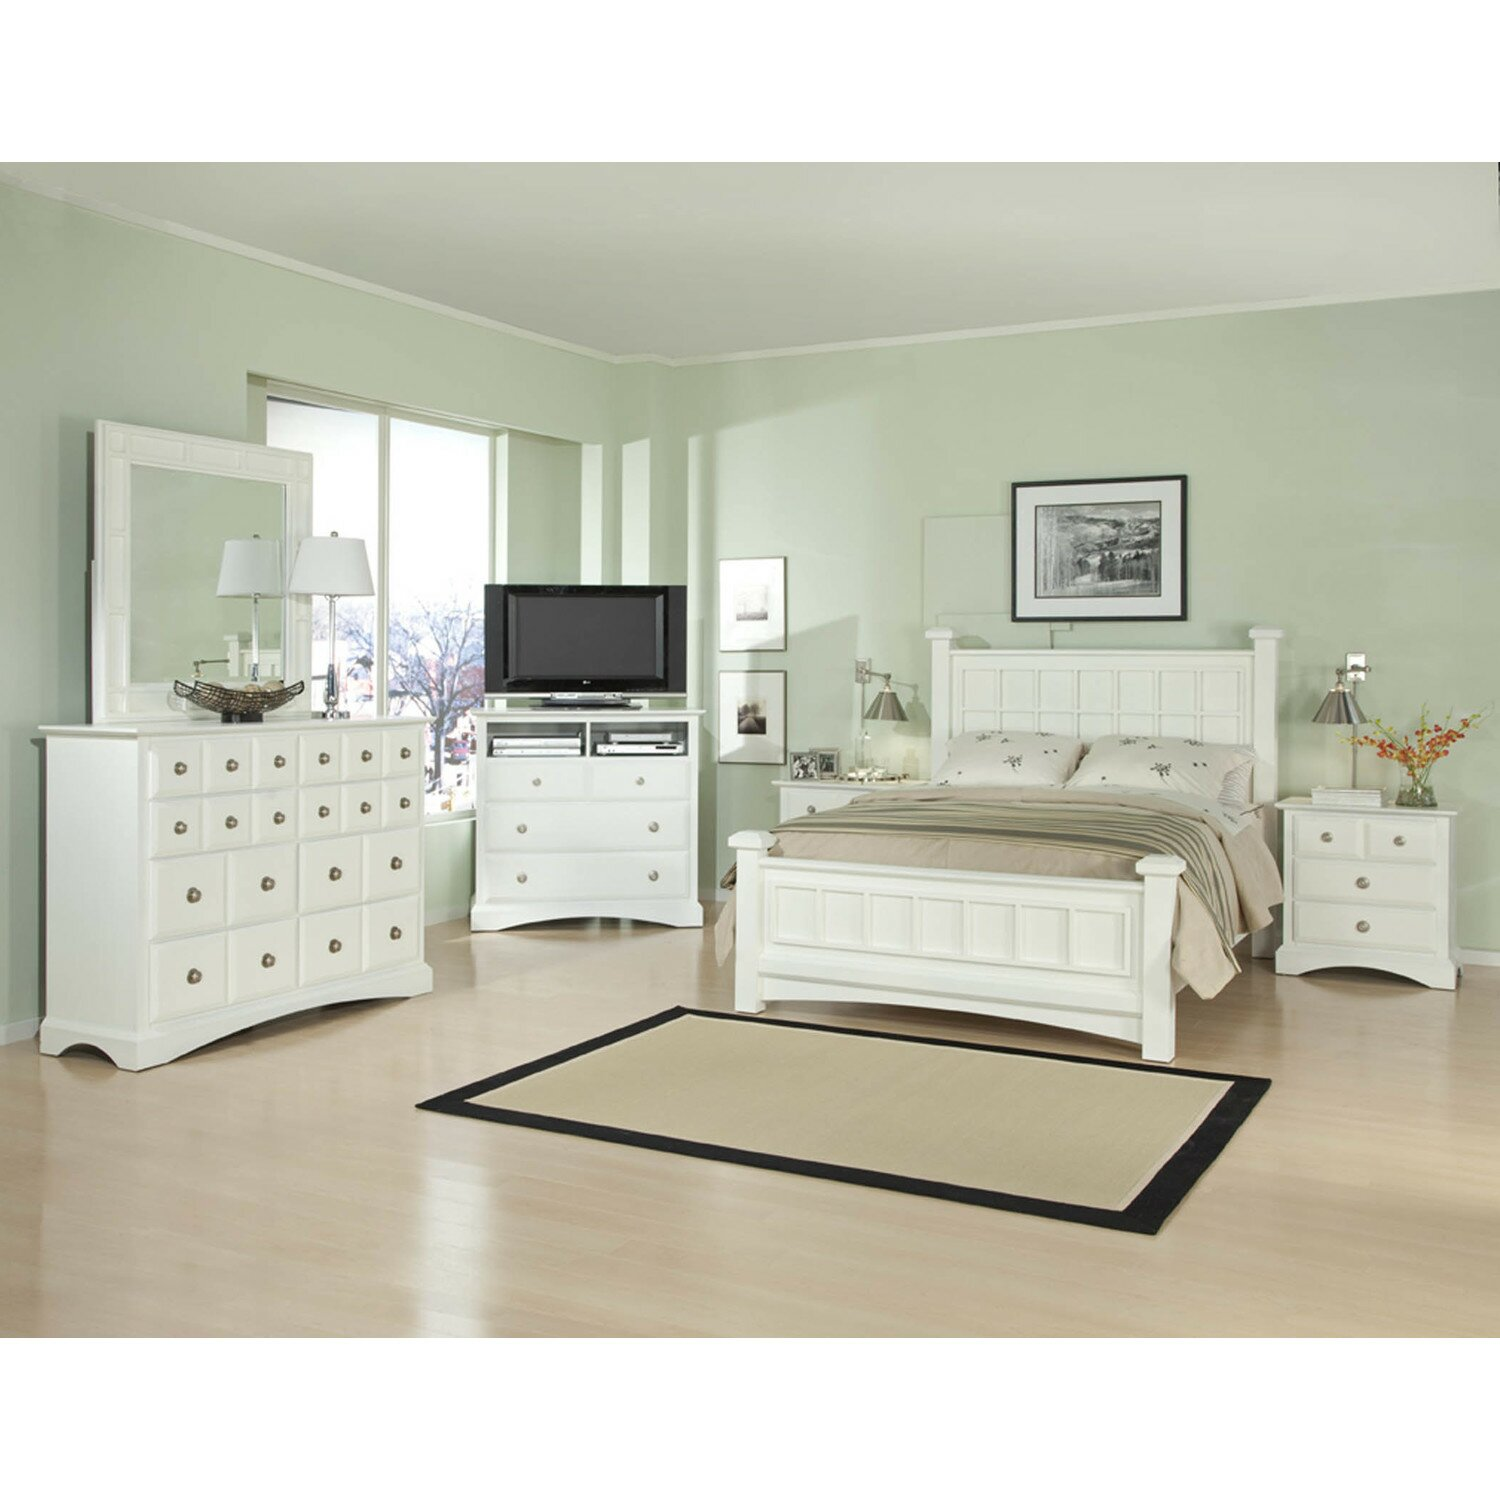 Bedroom: Craigslist Bedroom Sets | Chairs On Craigslist | Craigslist ...